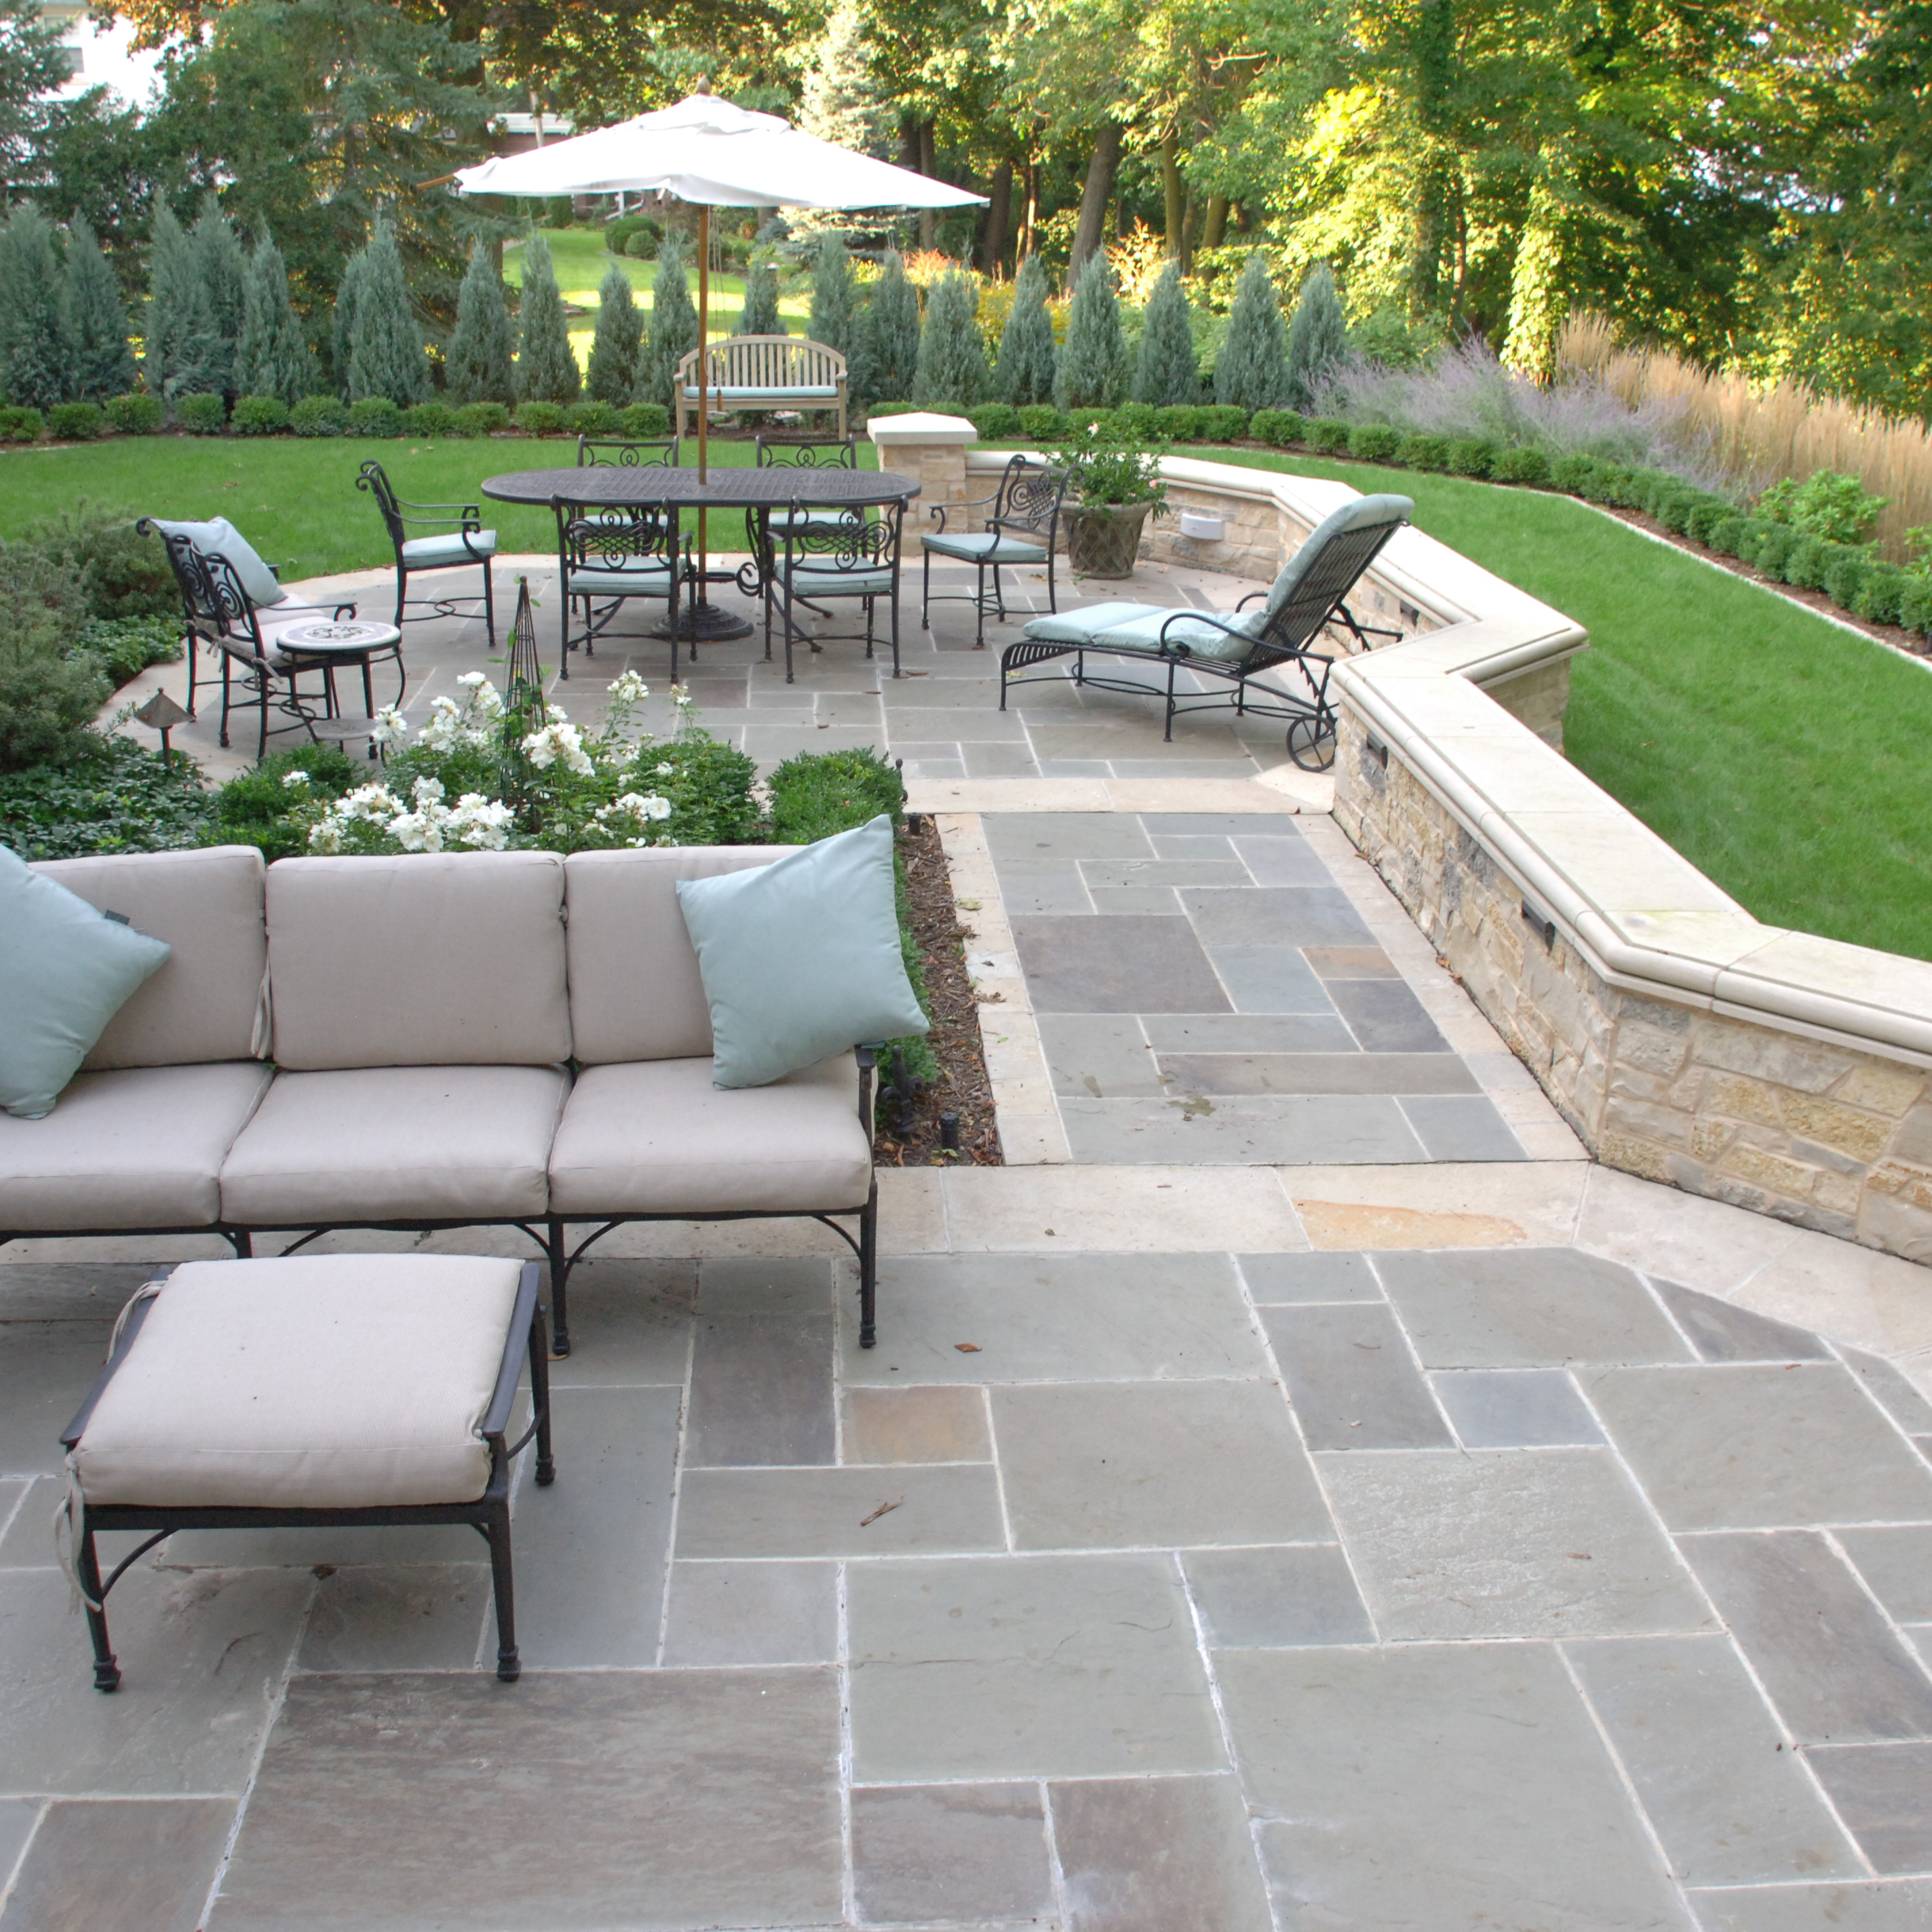 bluestone pavers have a smooth, natural cleft finish that is rich with SHAZEGO